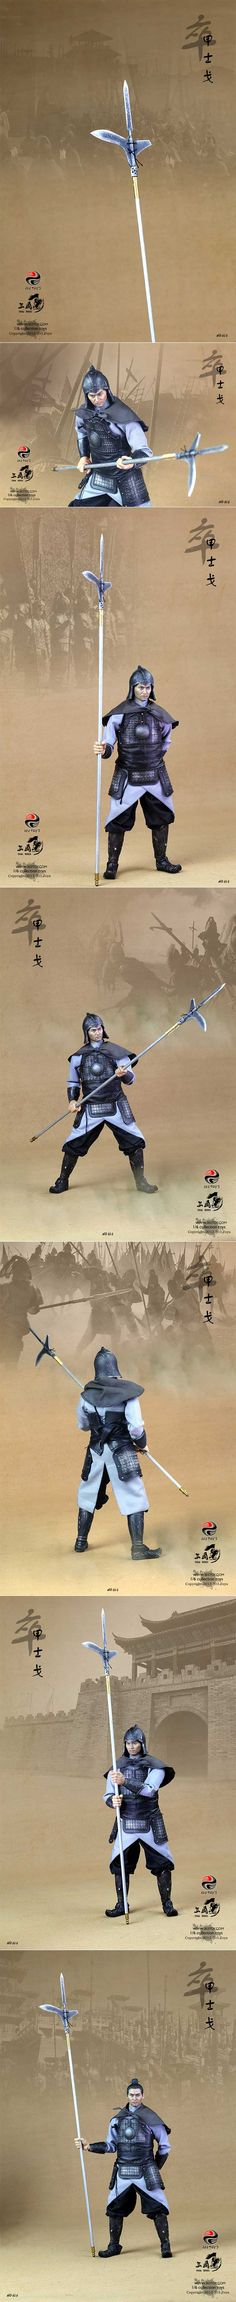 [303 Toys 1/6 China series(Soldier) Spear Kay hoplite - Complete set - NO.303]